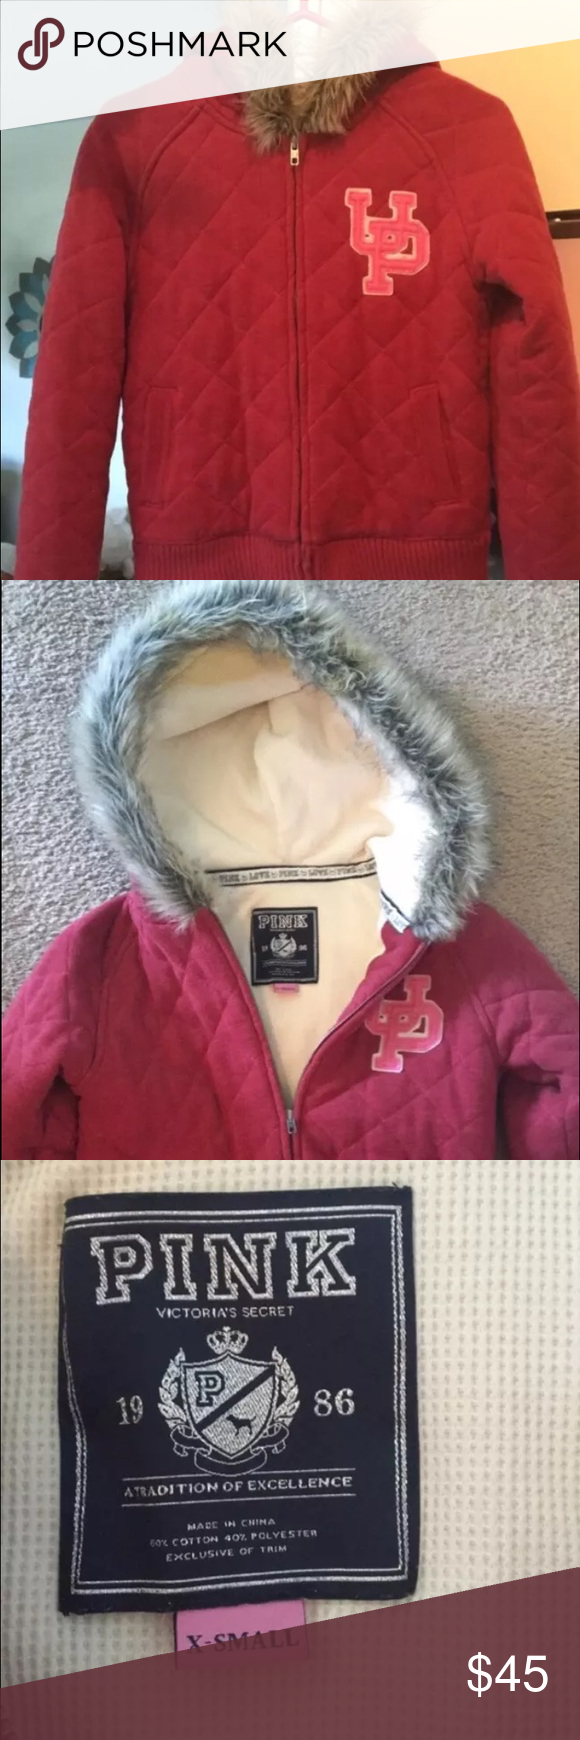 Victoria secret jacket! Brand new condition no tags had for a bit never never worn! Very comfortable and soft ✨ Victoria's Secret Jackets & Coats